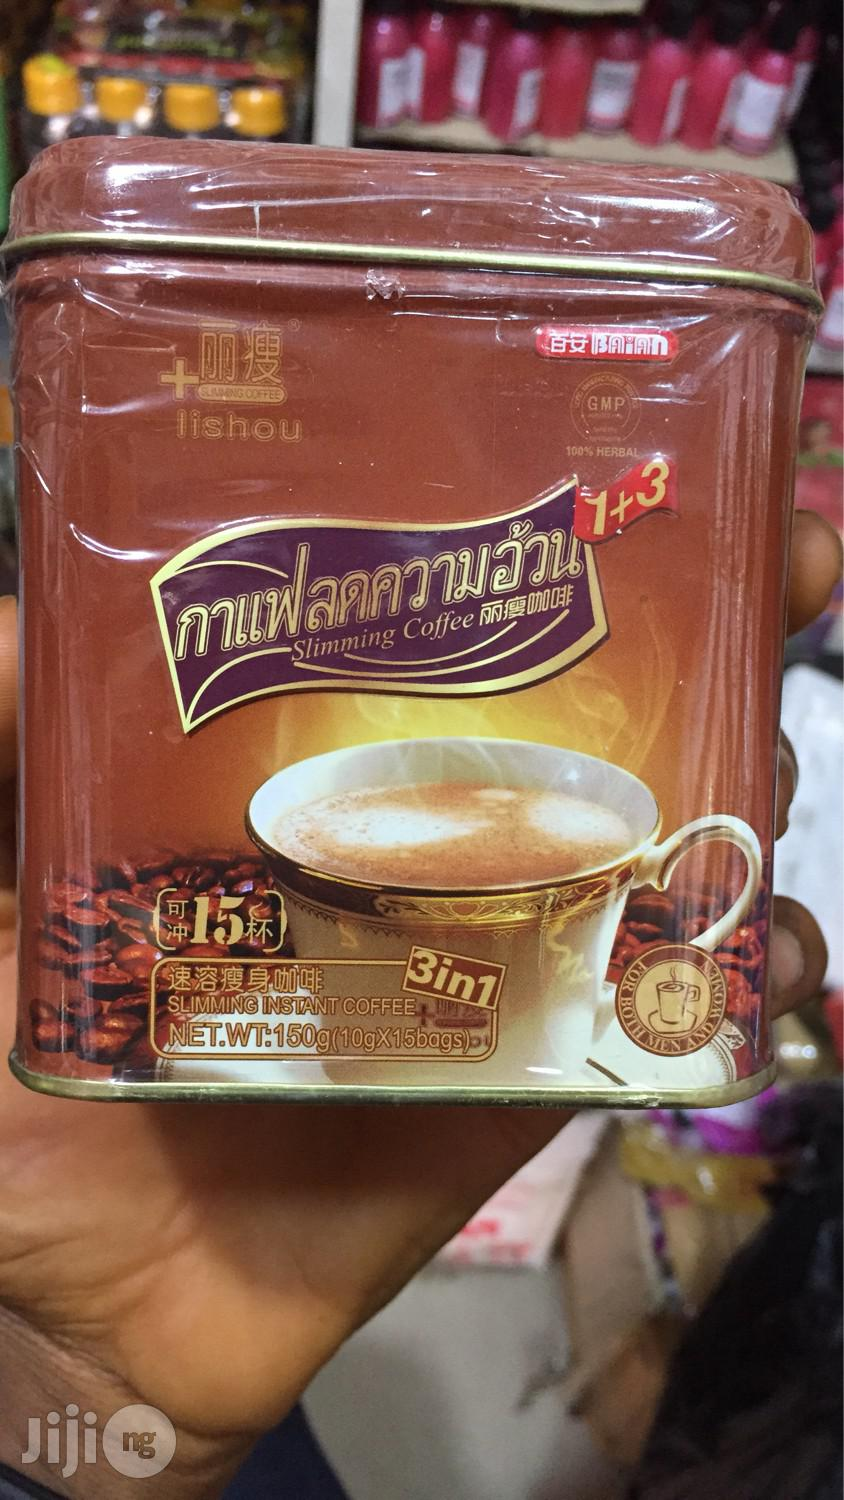 Archive: Lishou Instant Slimming Coffee